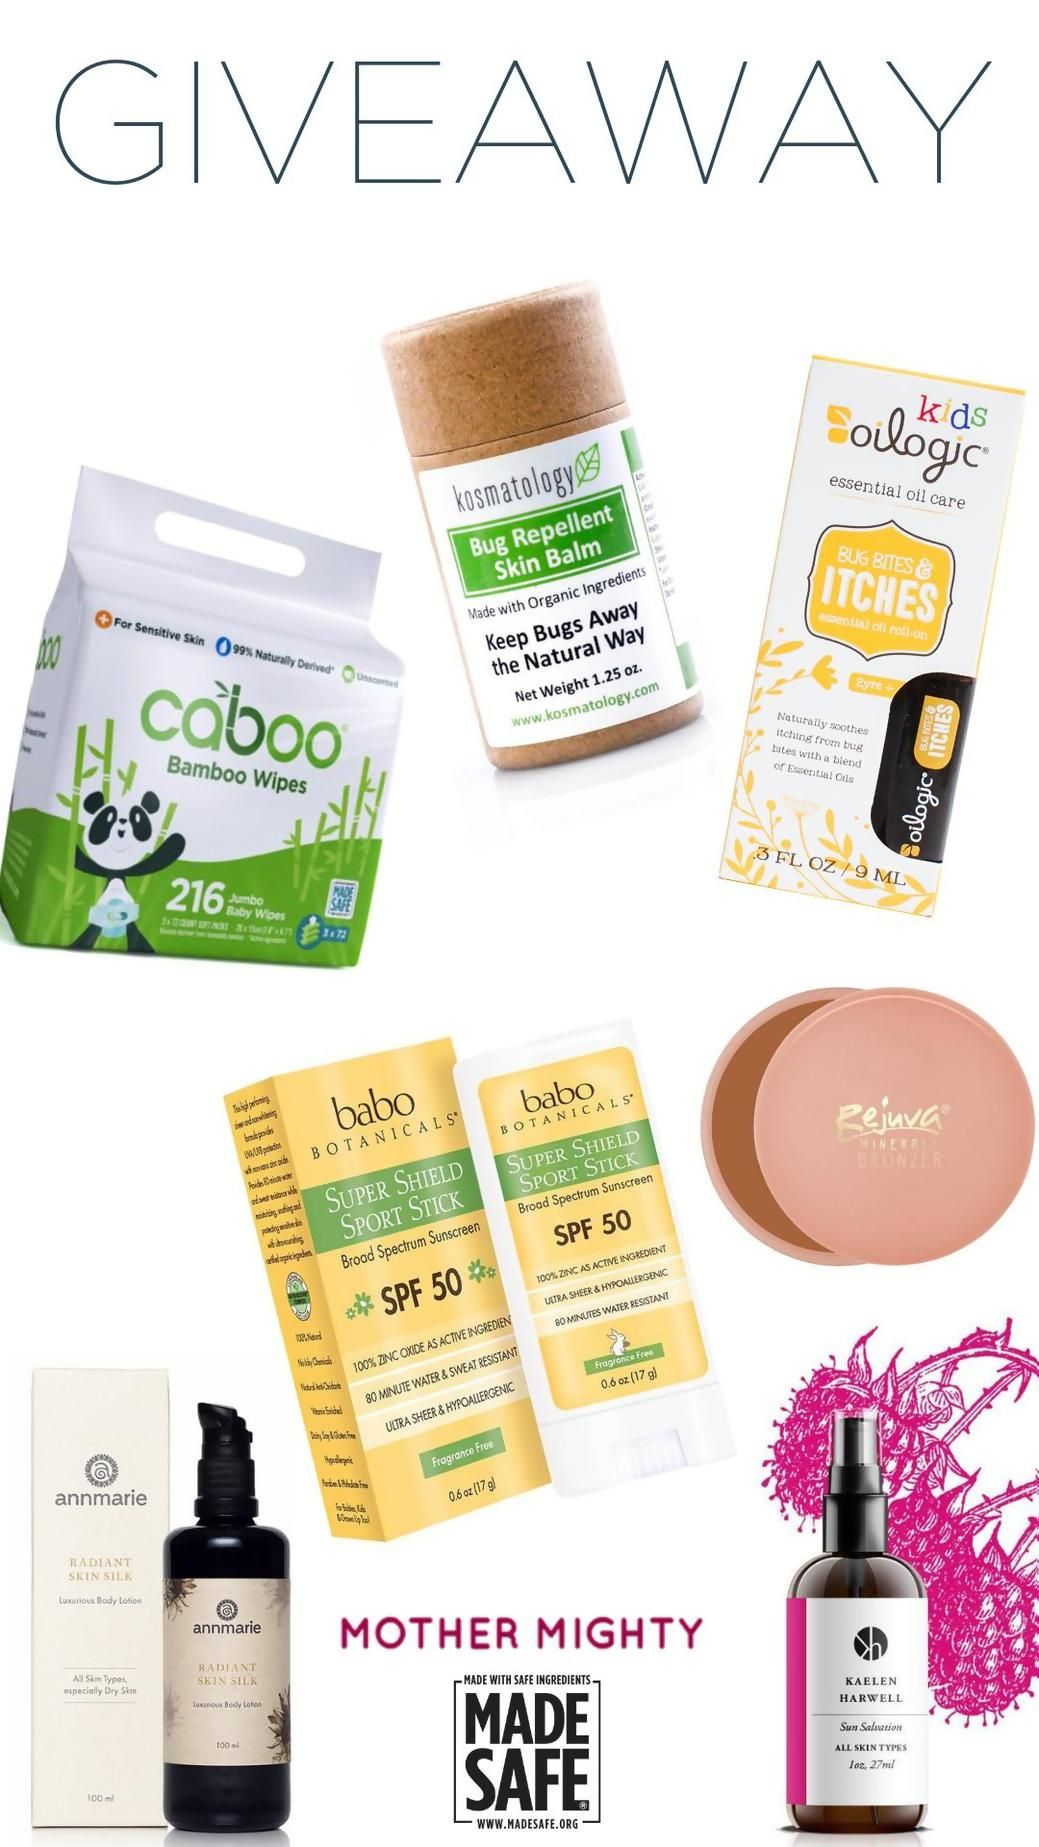 Pin By Linda Viana On Contests Giveaway The Balm Babo Botanicals